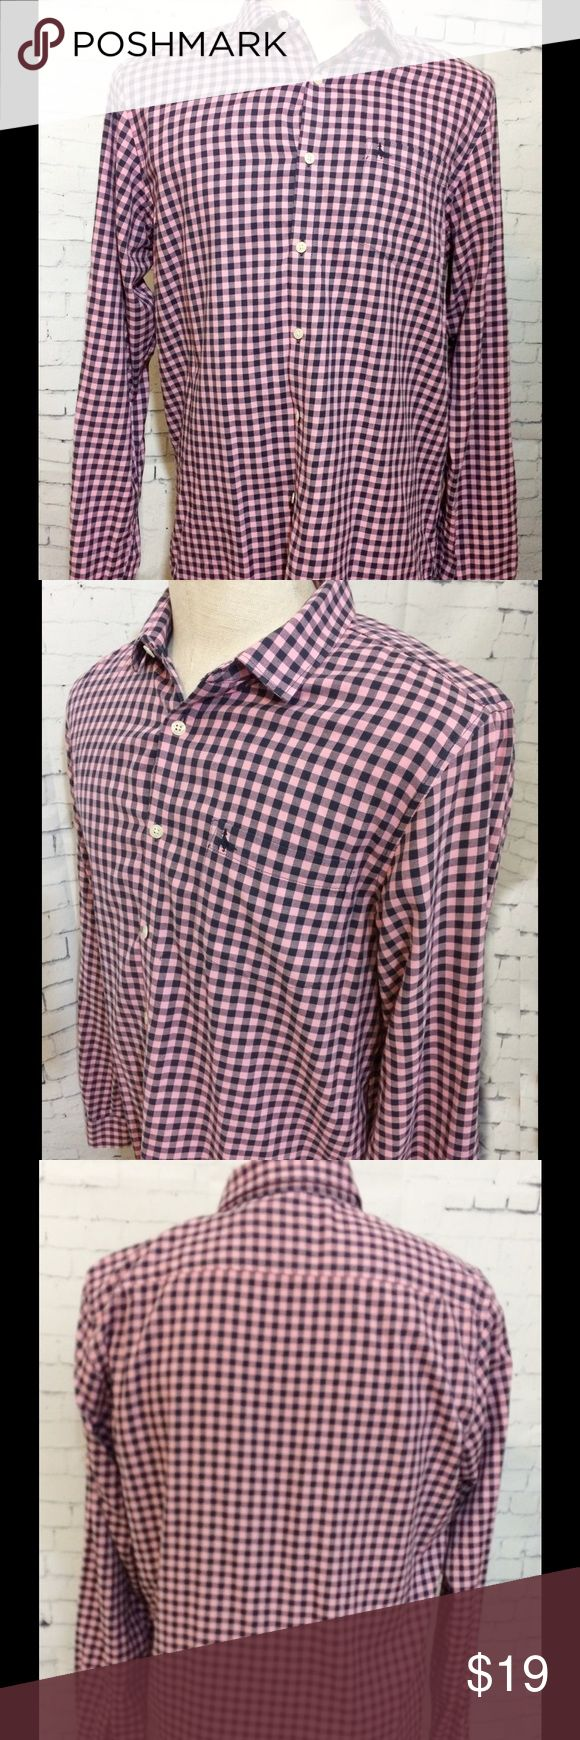 Jack Wills Fabulously British Navy Pink Check XL Jack Wills Fabulously British Navy Pink Check Classic Fit Light Flannel Shirt Size XL Jack Wills Fabulously British Shirts Casual Button Down Shirts